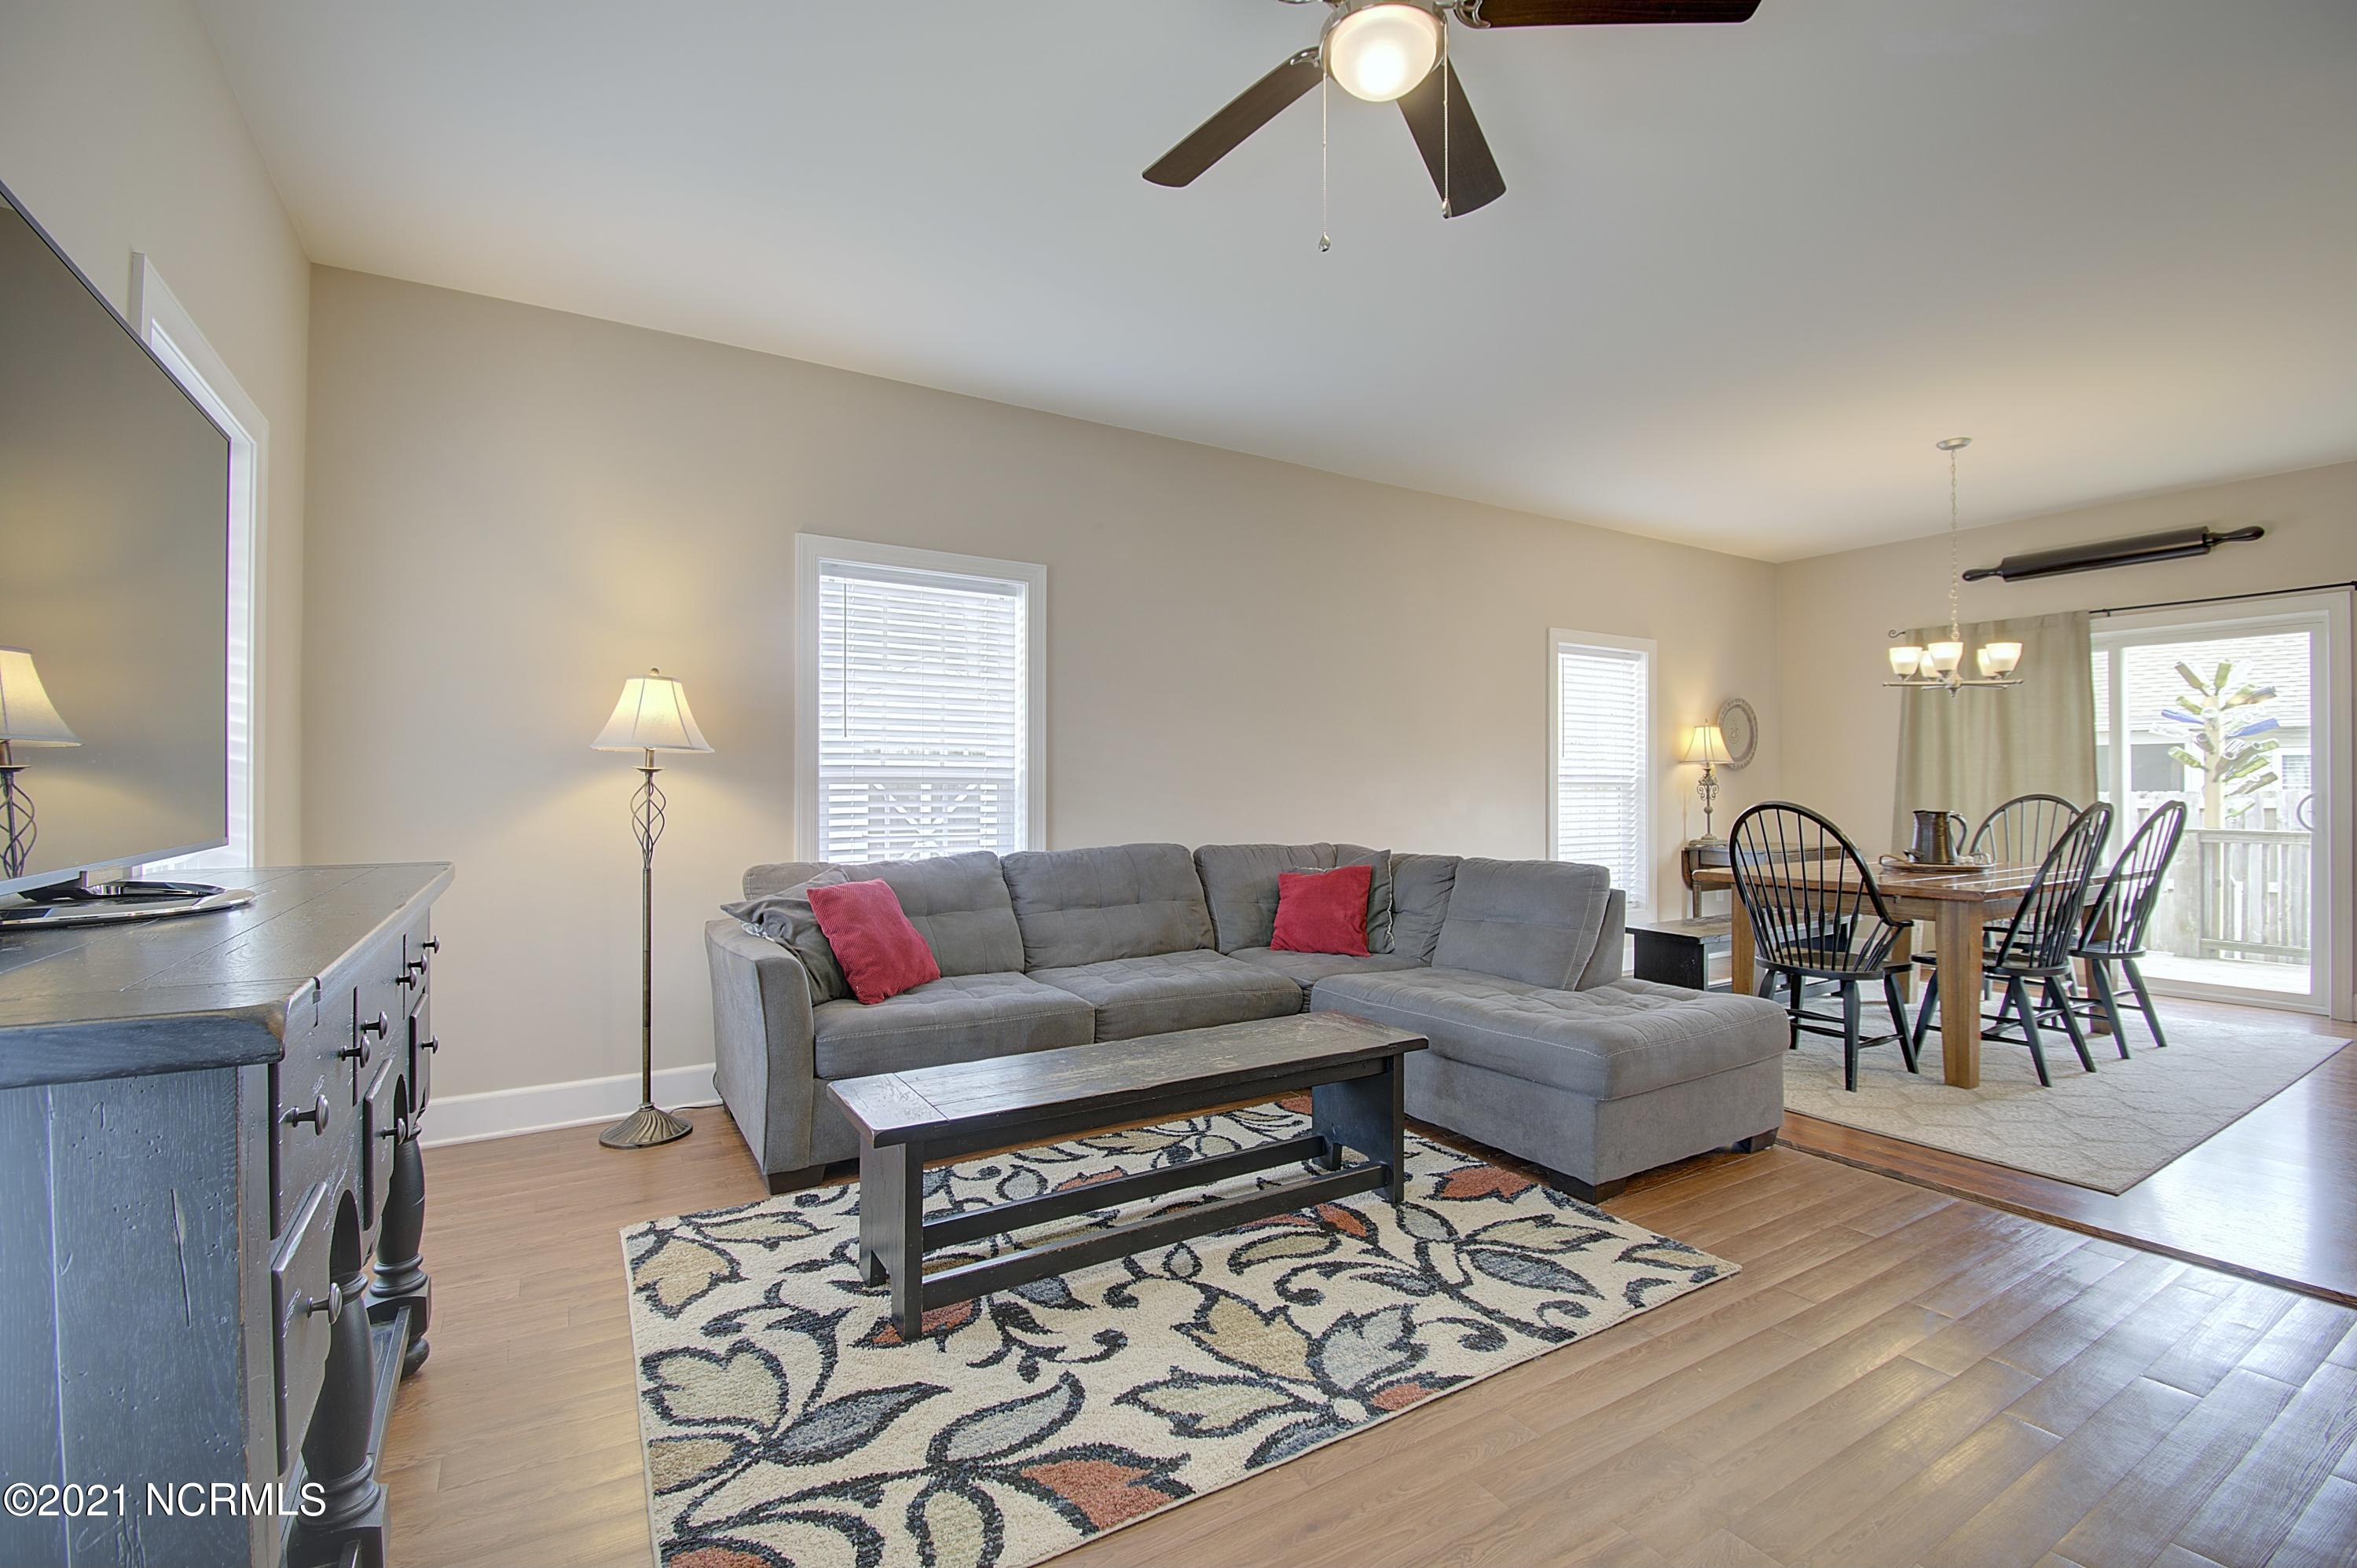 4490 Pinewood Village Drive, Southport, North Carolina 28461, 4 Bedrooms Bedrooms, 9 Rooms Rooms,3 BathroomsBathrooms,Single family residence,For sale,Pinewood Village,100263440